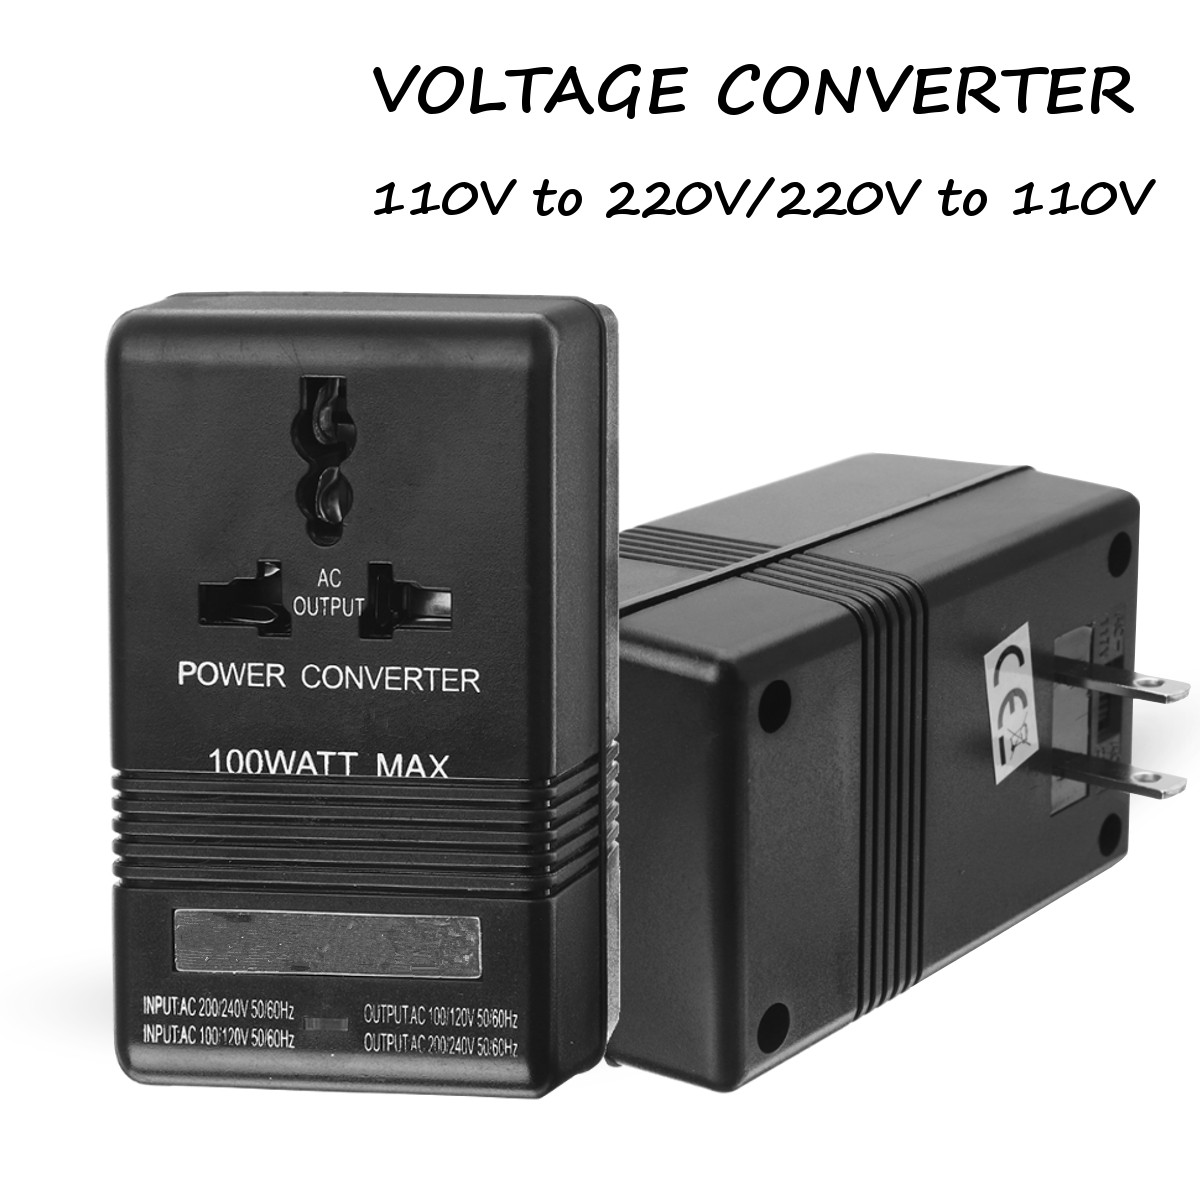 AC 110V to 220V 100W Step Up and Down Dual Voltage Converter Transformer For Electrical Appliances Travel Adapter Switch бра eglo maserlo 95055